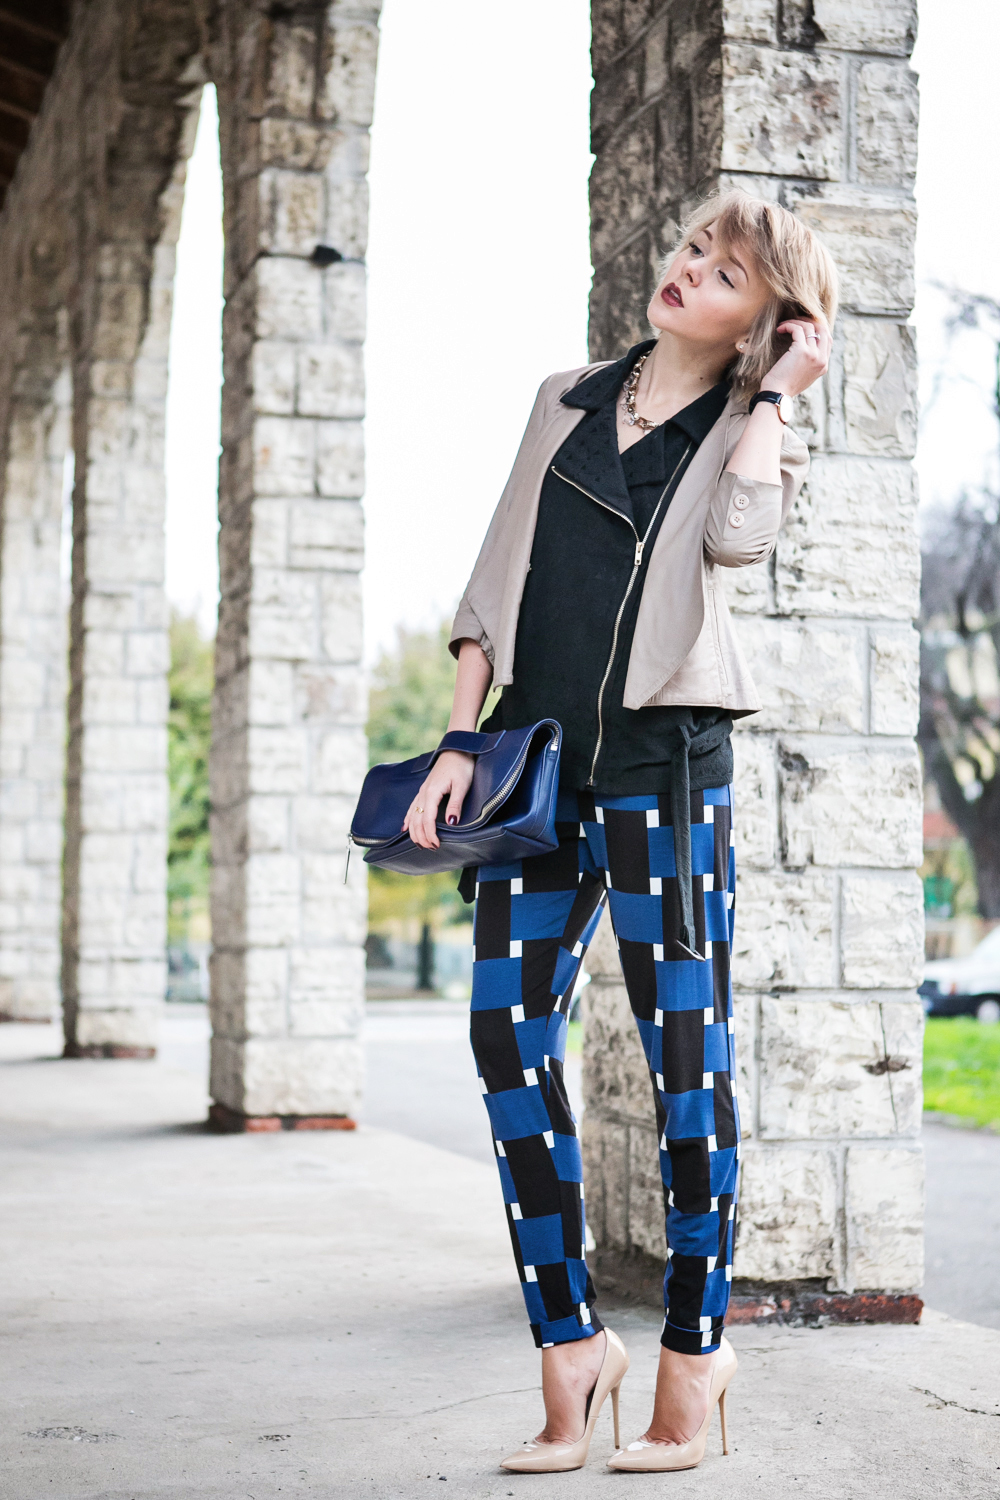 1darya kamalova thecablook fashion blog russian blogger italy moda street style pixie short hair fashion blogger 3 1 PHIPPIP LIM MINUTE BAG NAVY asos pants as by df leather jacket chicwish vest jimmy choo anouk nude heels daniel wellington watches-10